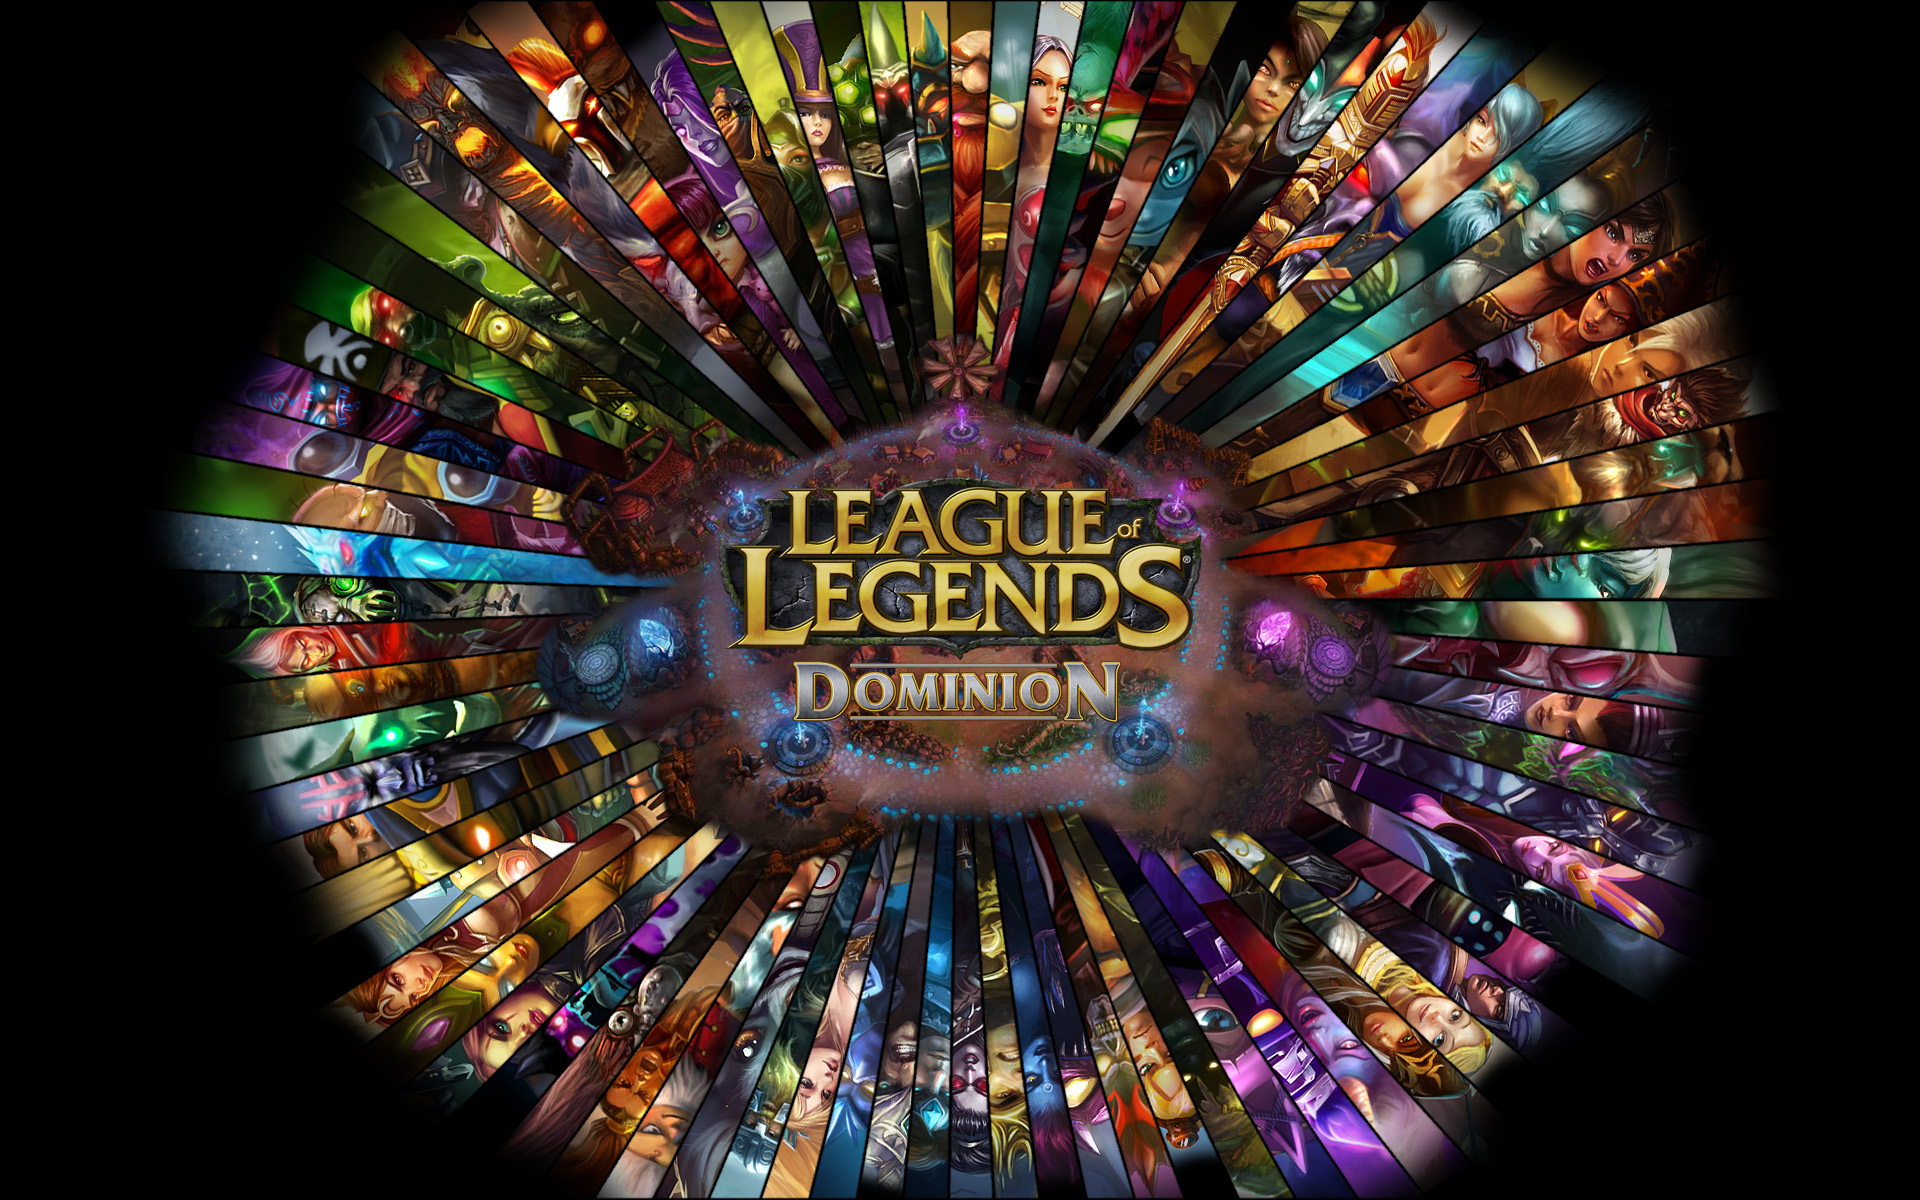 League of Legends Dominion wallpaper